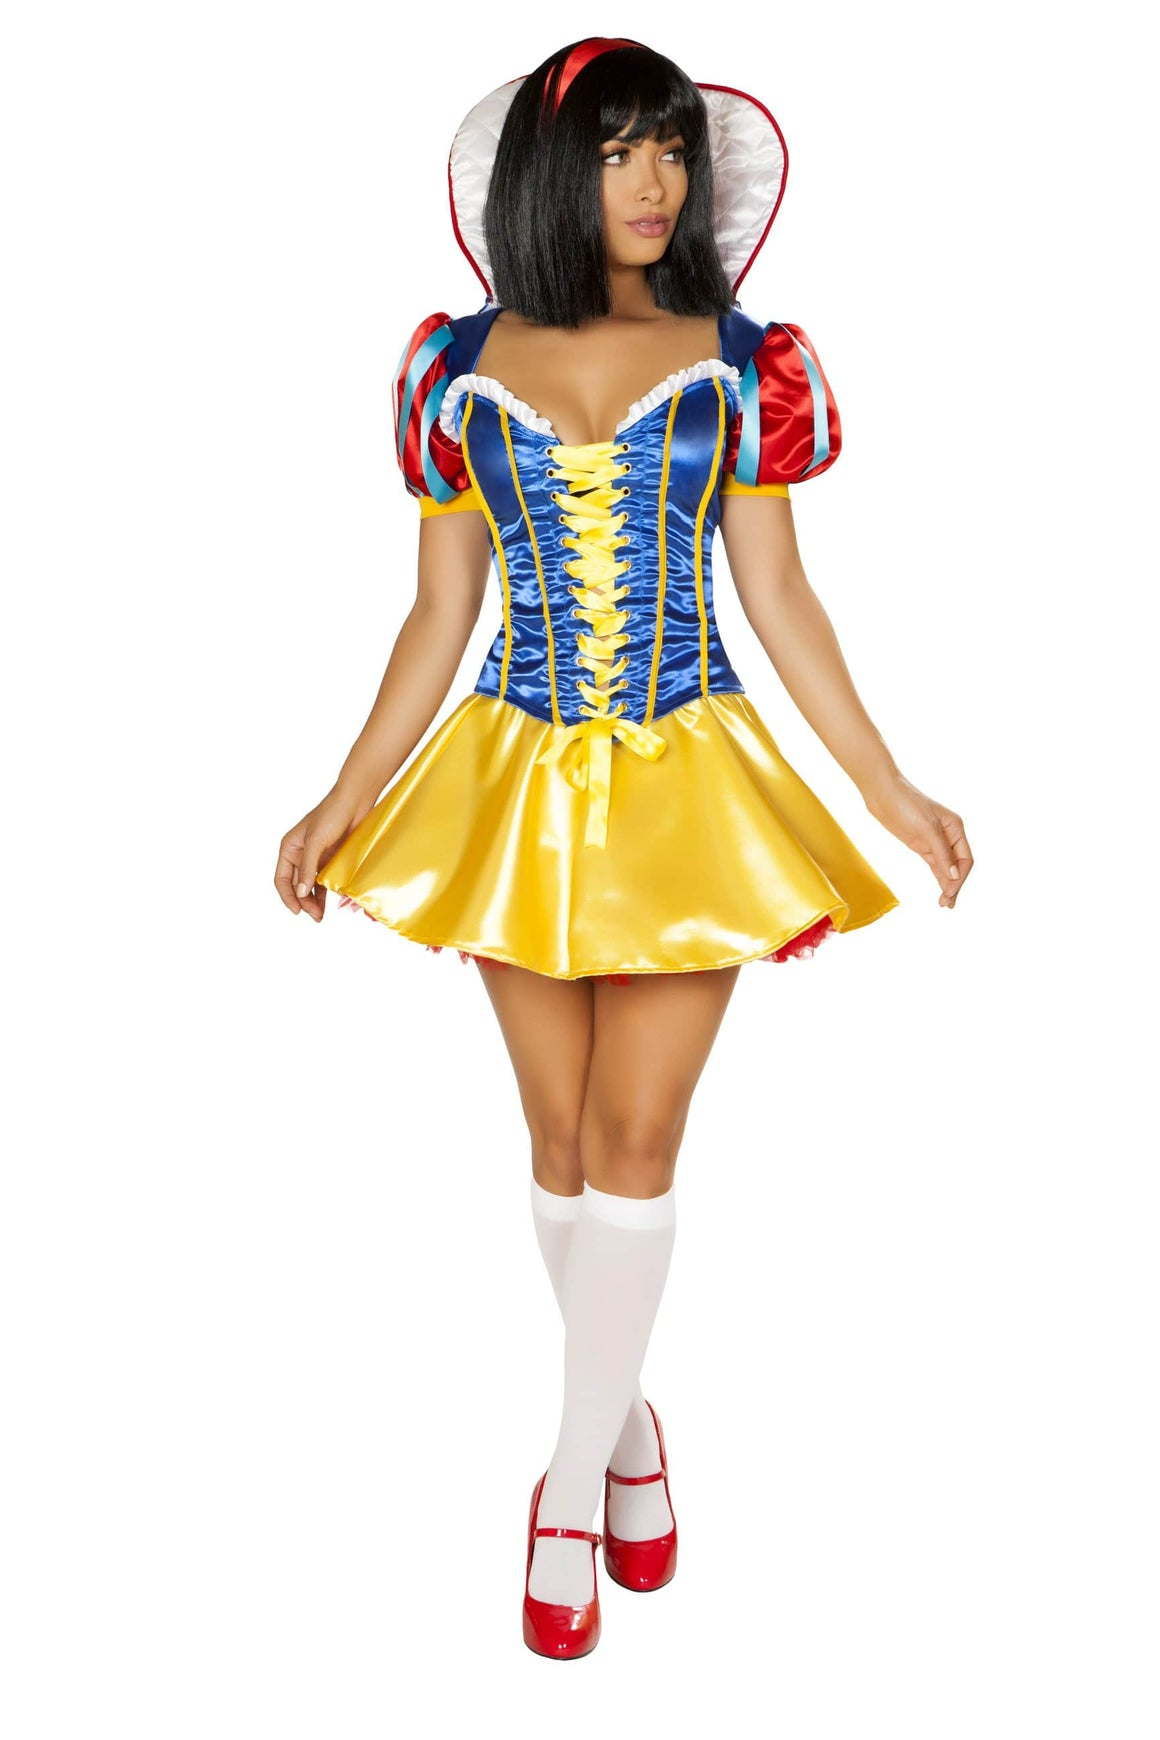 Roma Small / Multicolor 2pc Pure as Snow SHC-4855-S-R Apparel & Accessories > Costumes & Accessories > Costumes